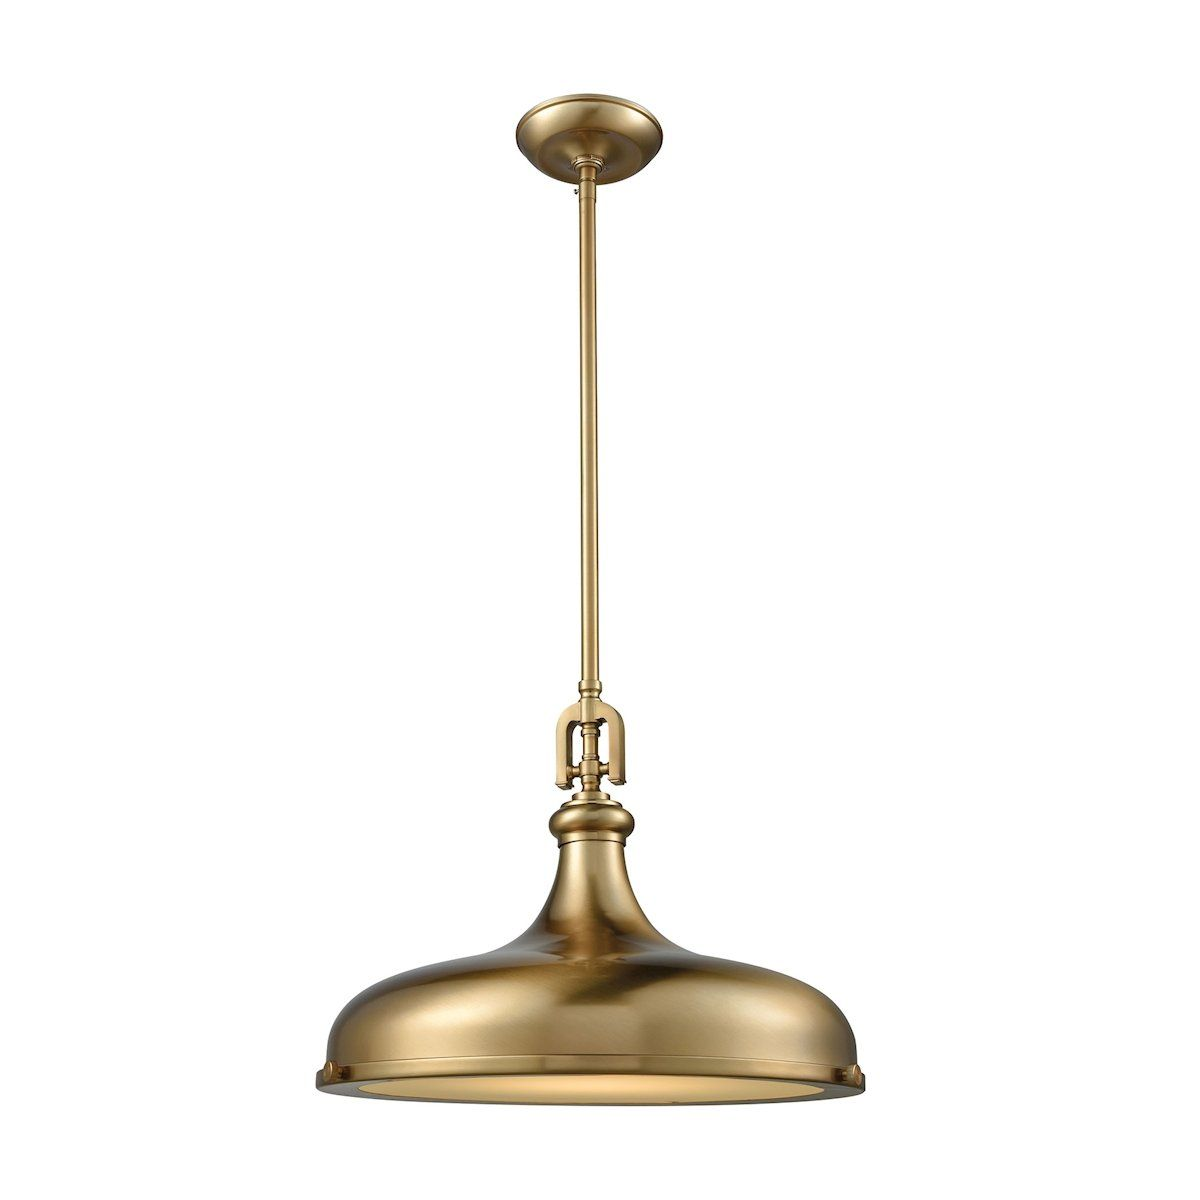 Elk lighting rutherford light pendant in satin brass with frosted